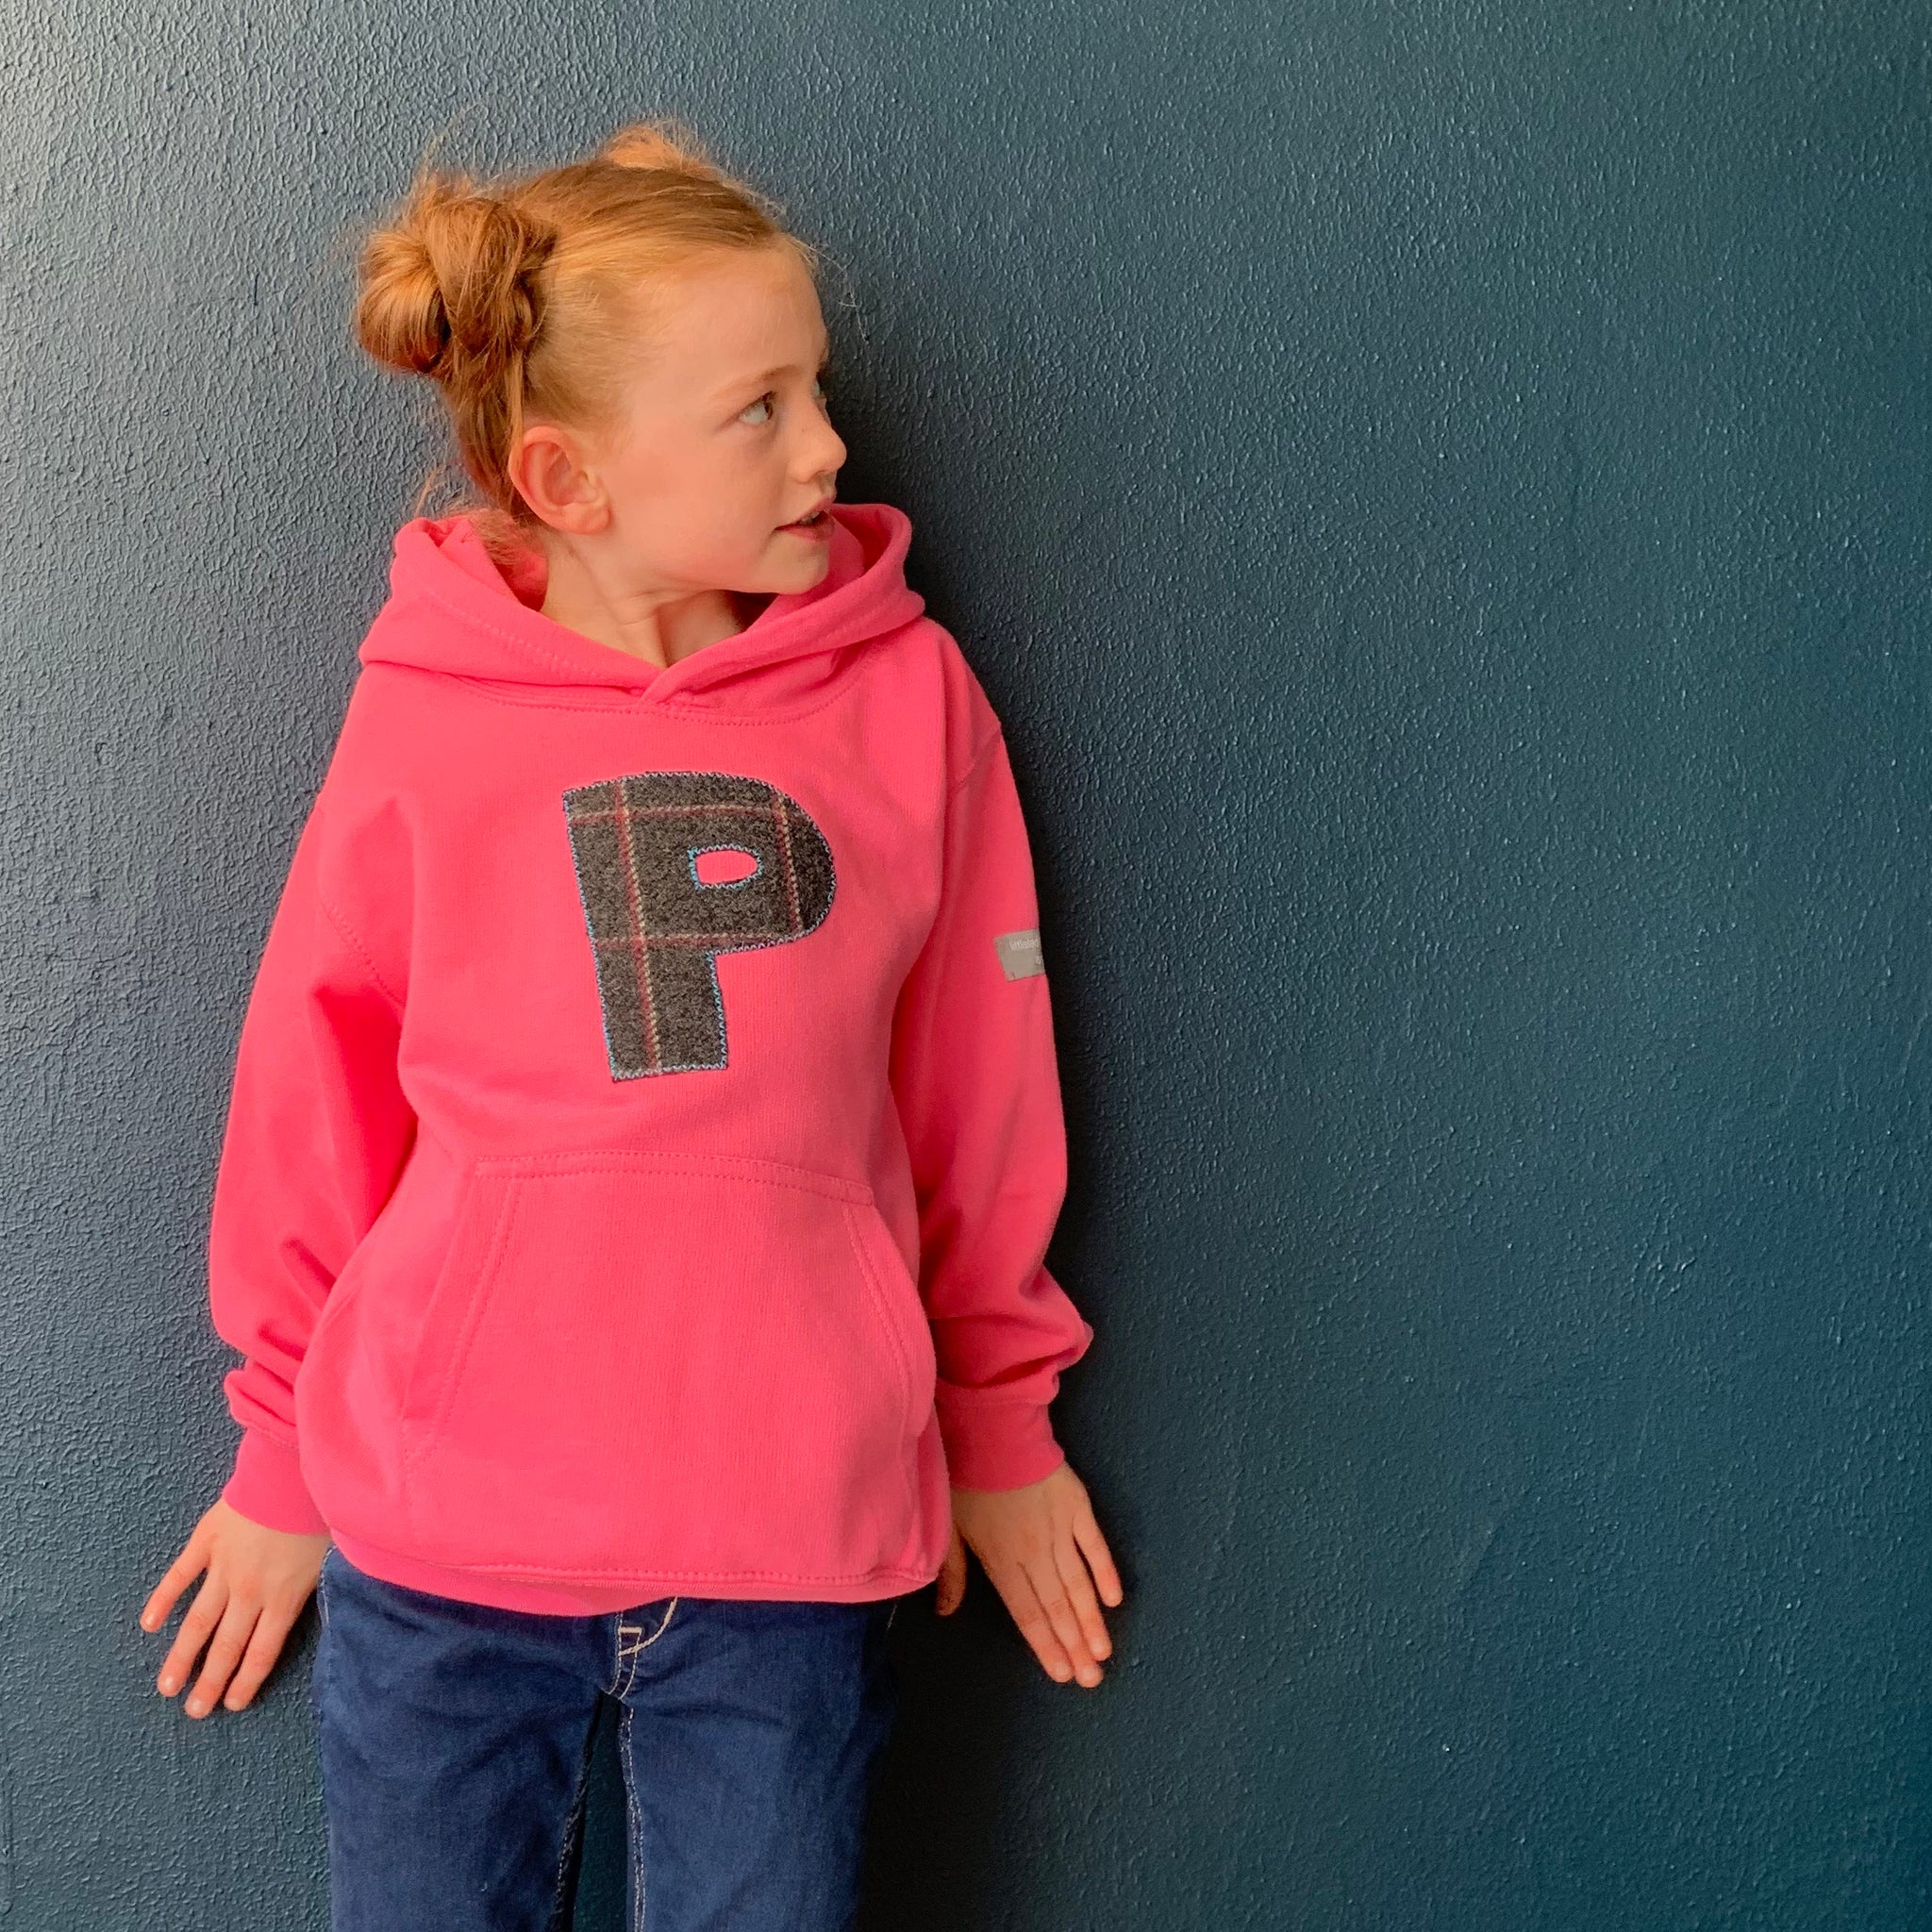 personalised hoodies, boys hoodies, girls hoodie, personalised gifts, design your own hoody - pink personalised initial hoodies